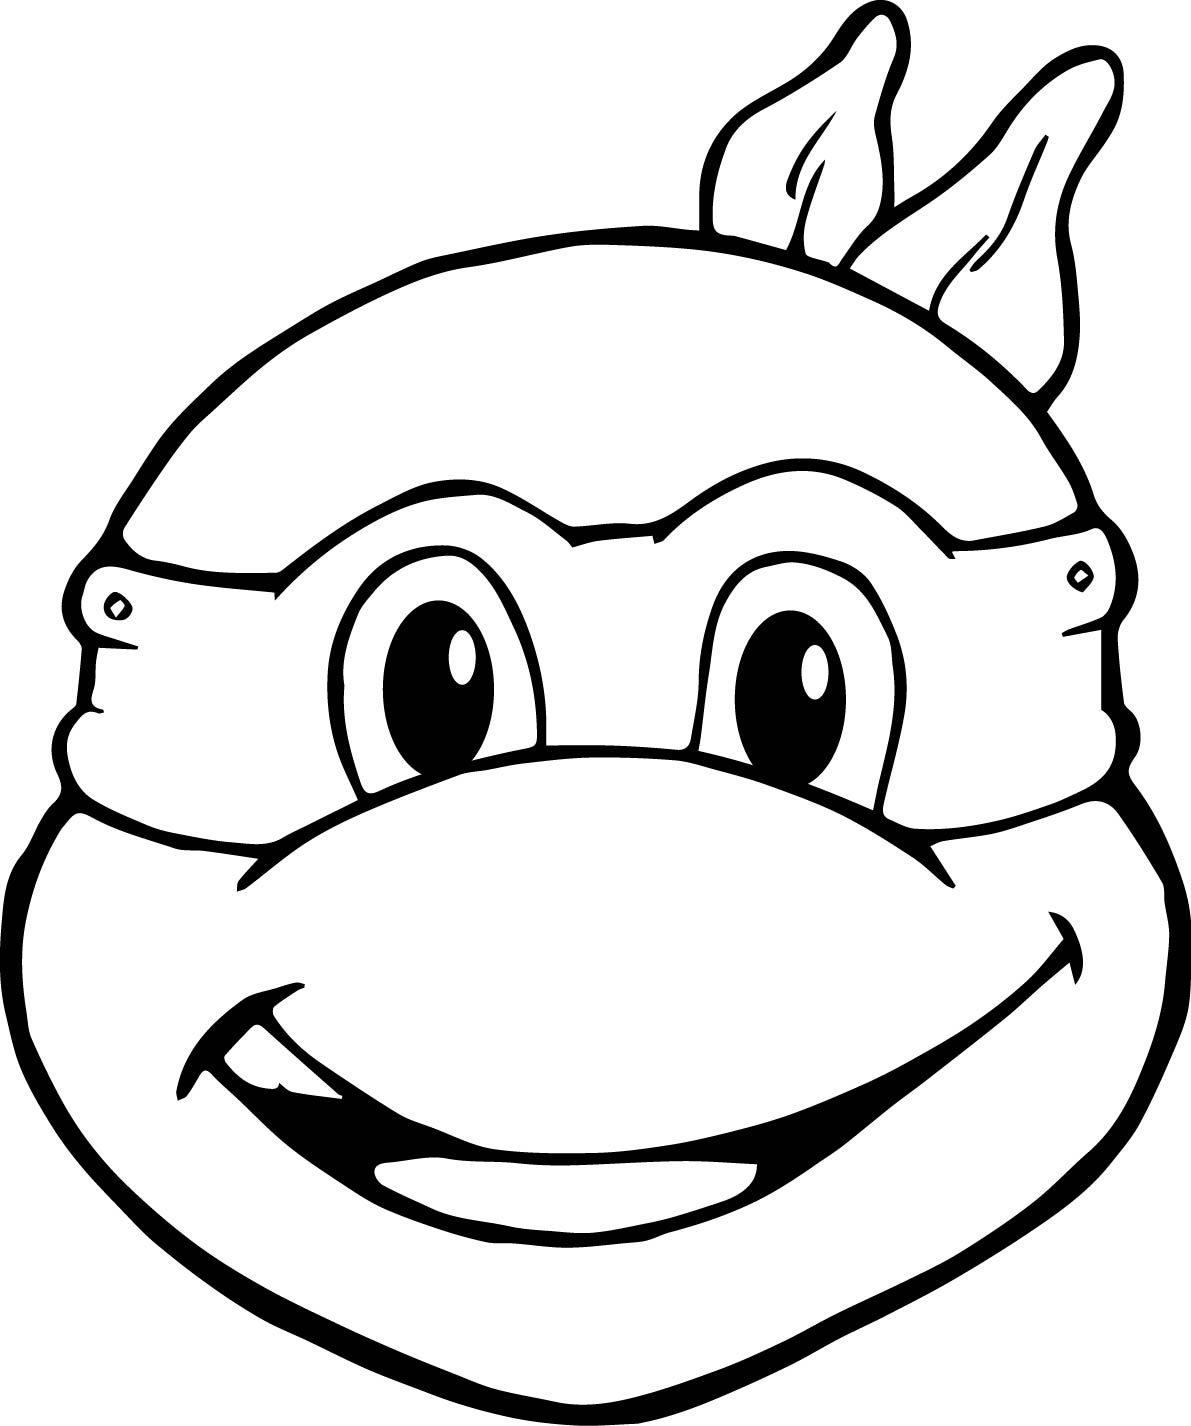 Ninja Turtles Coloring Pages Head To Head | Wecoloringpage ...